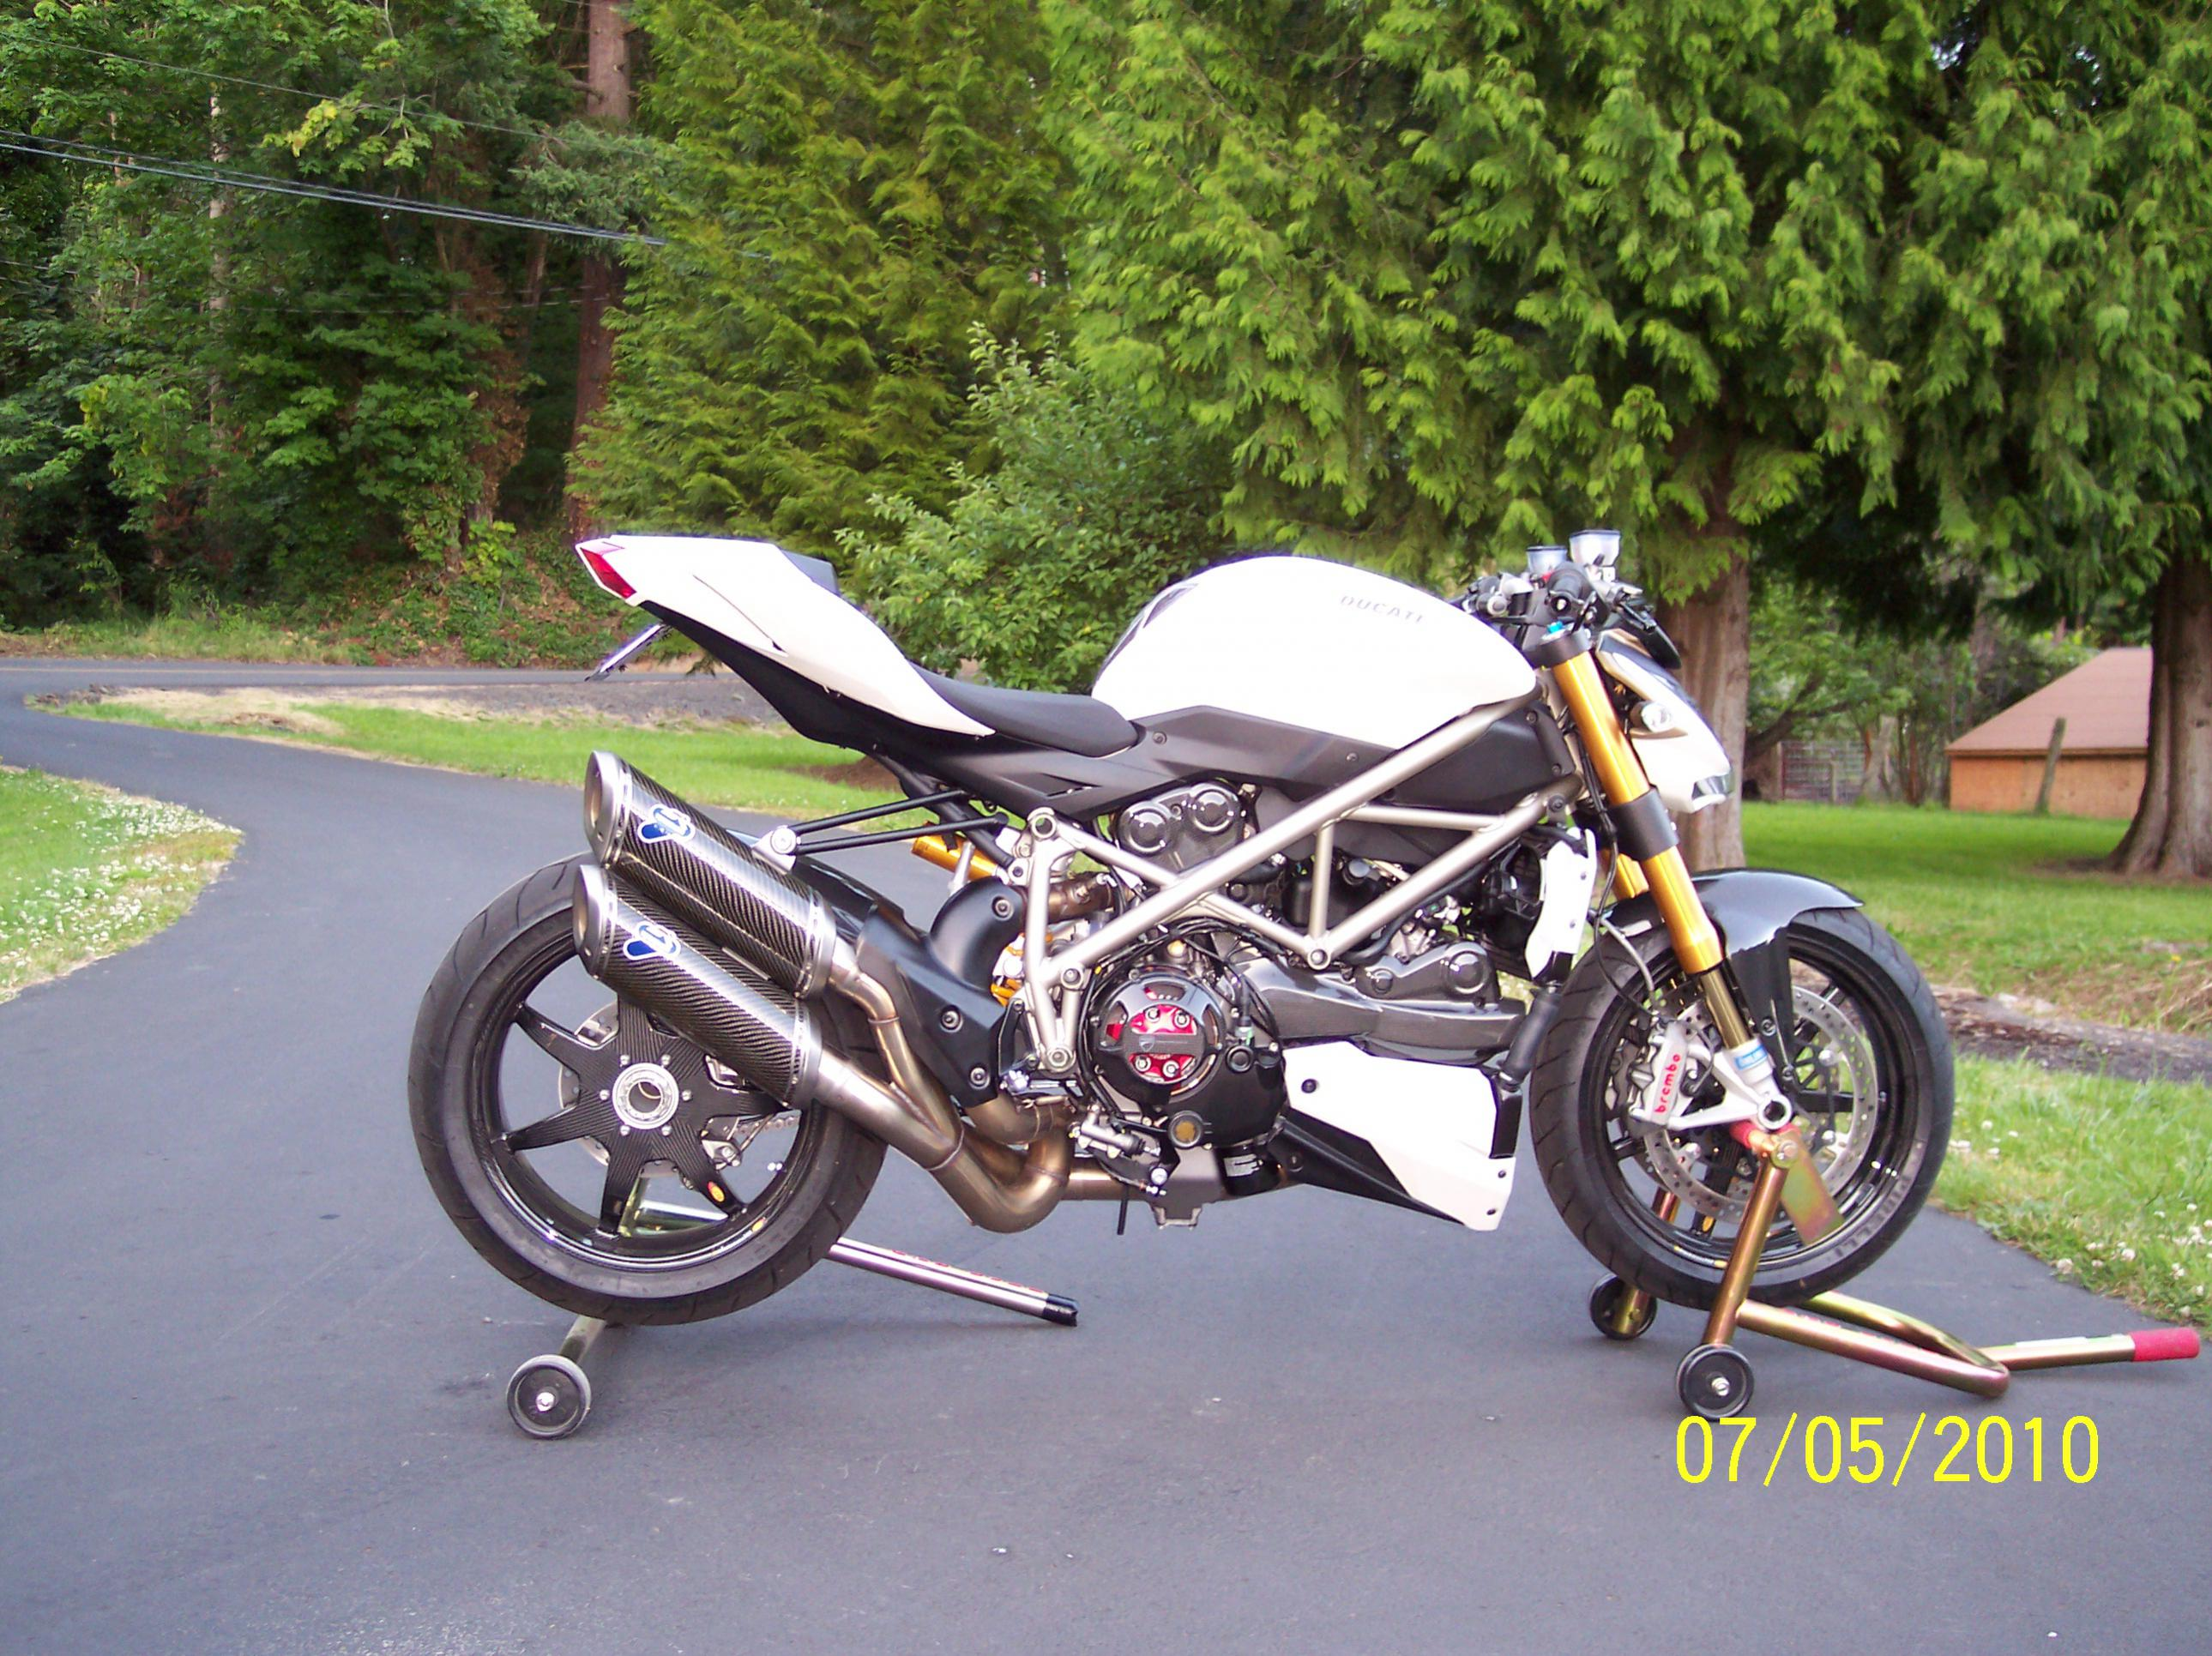 shift tech carbon - page 3 - ducati.ms - the ultimate ducati forum